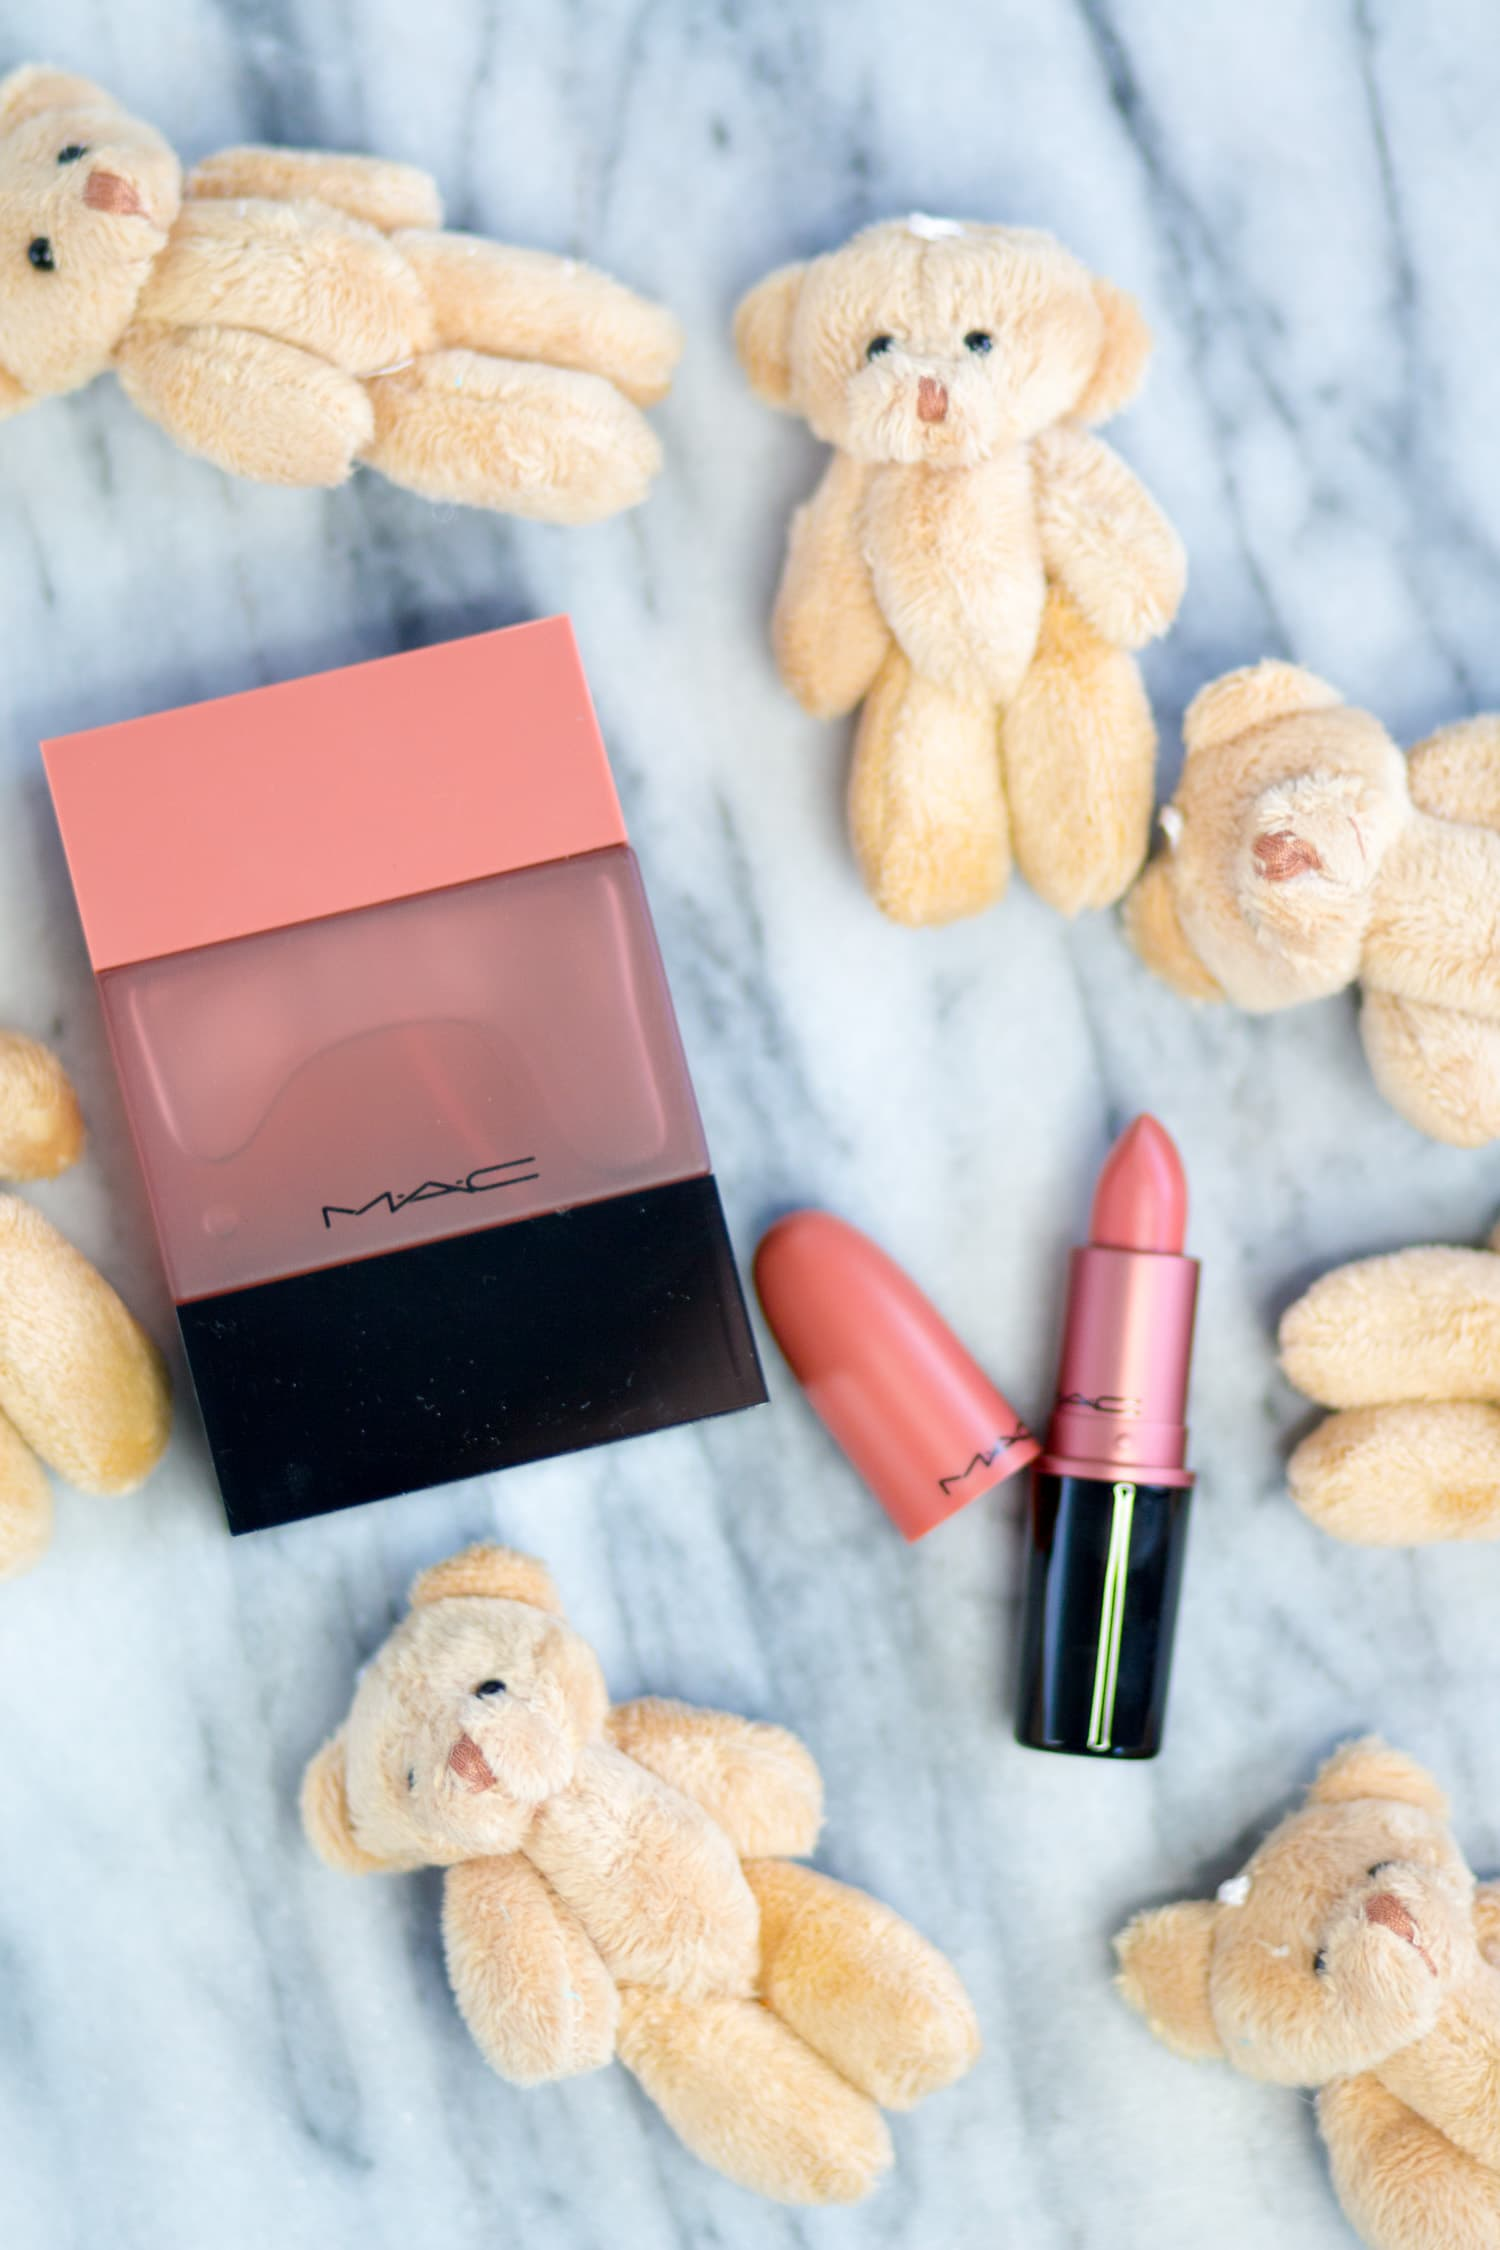 A full review of the MAC Shadescents Velvet Teddy perfume and lipstick by Orlando, Florida, beauty blogger Ashley Brooke Nicholas